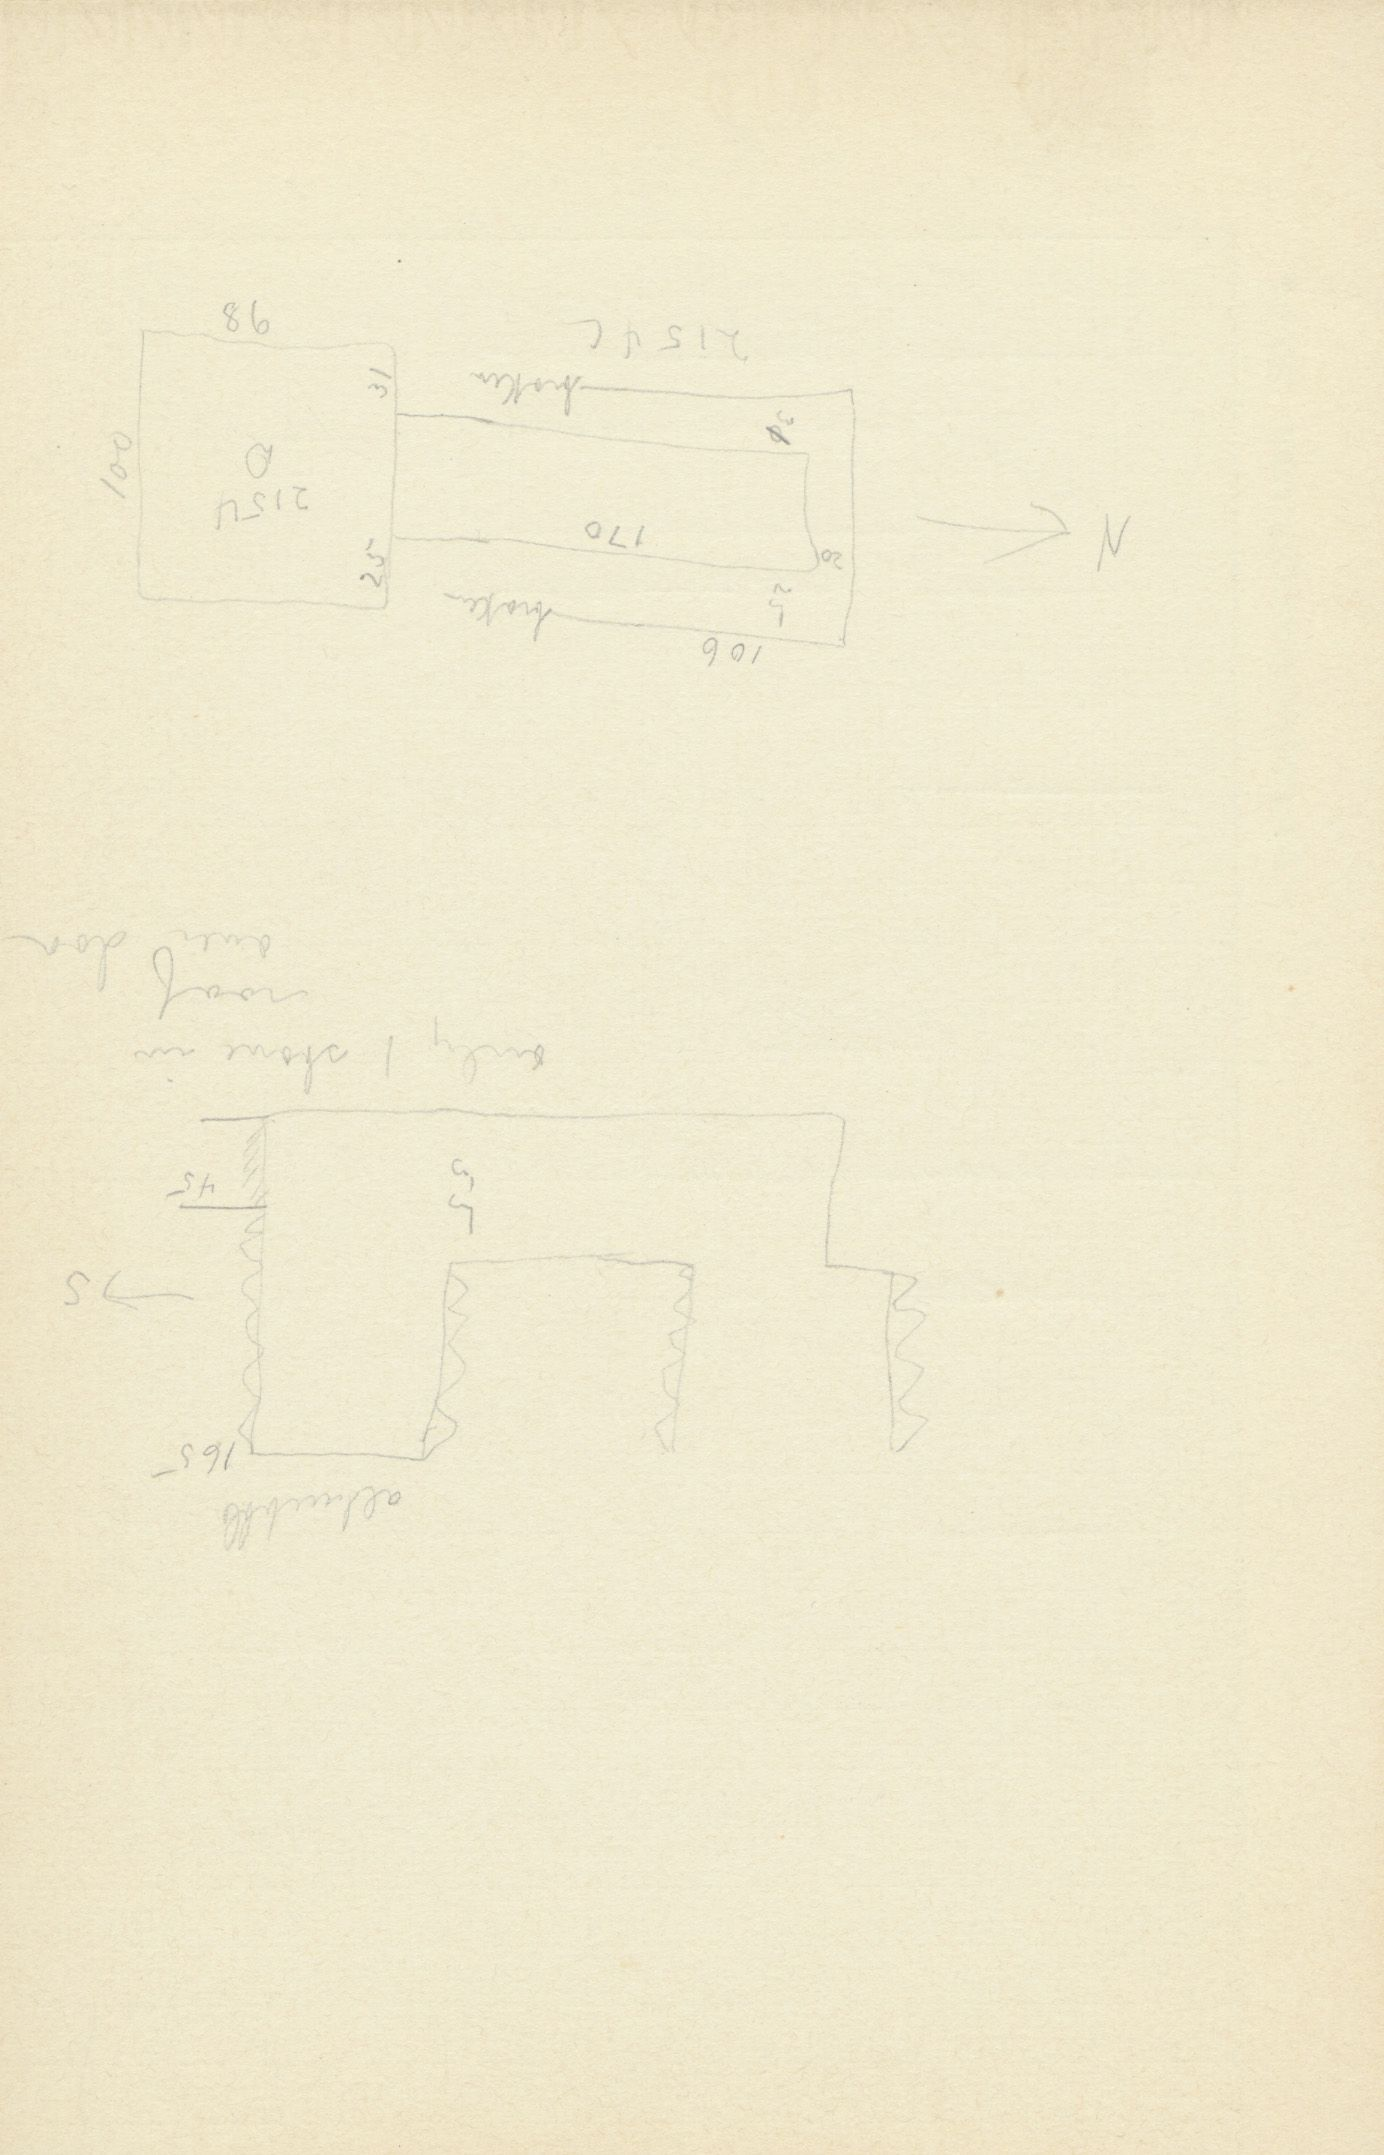 Maps and plans: G 2154, Shaft D, notes